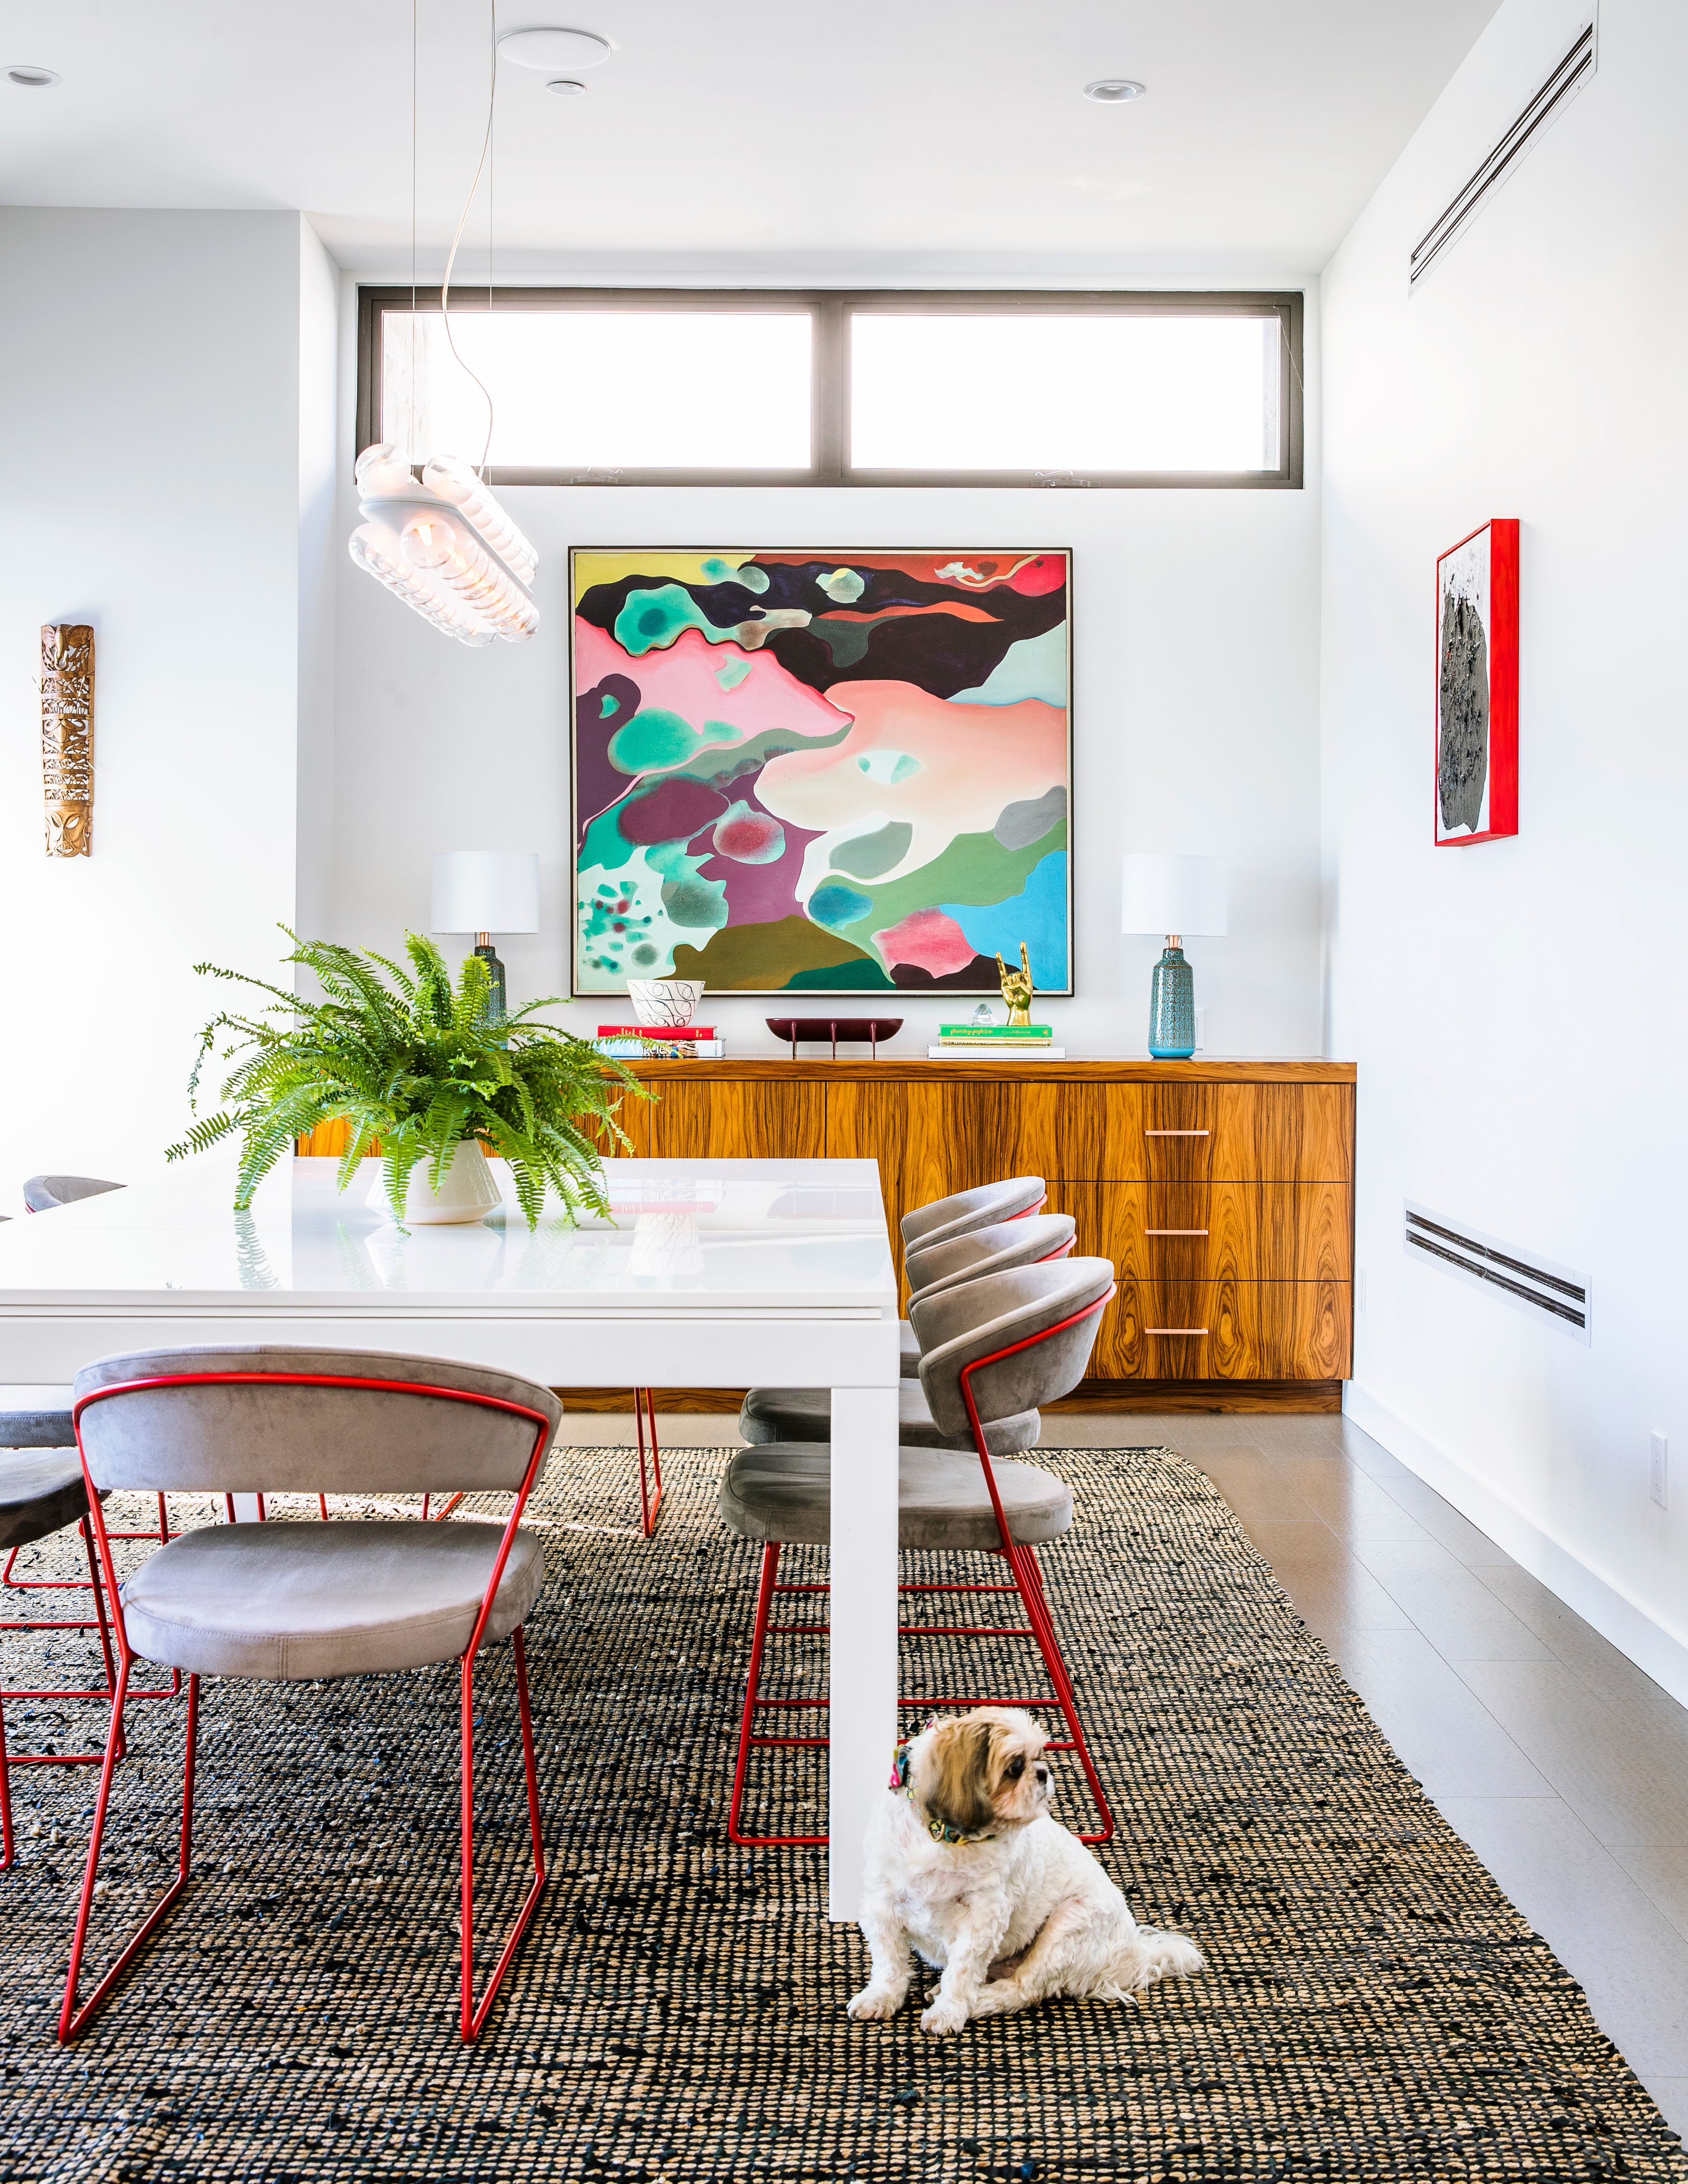 How To Incorporate Colorful Art Into Your Home Decor Decorating Your Home Home Decor